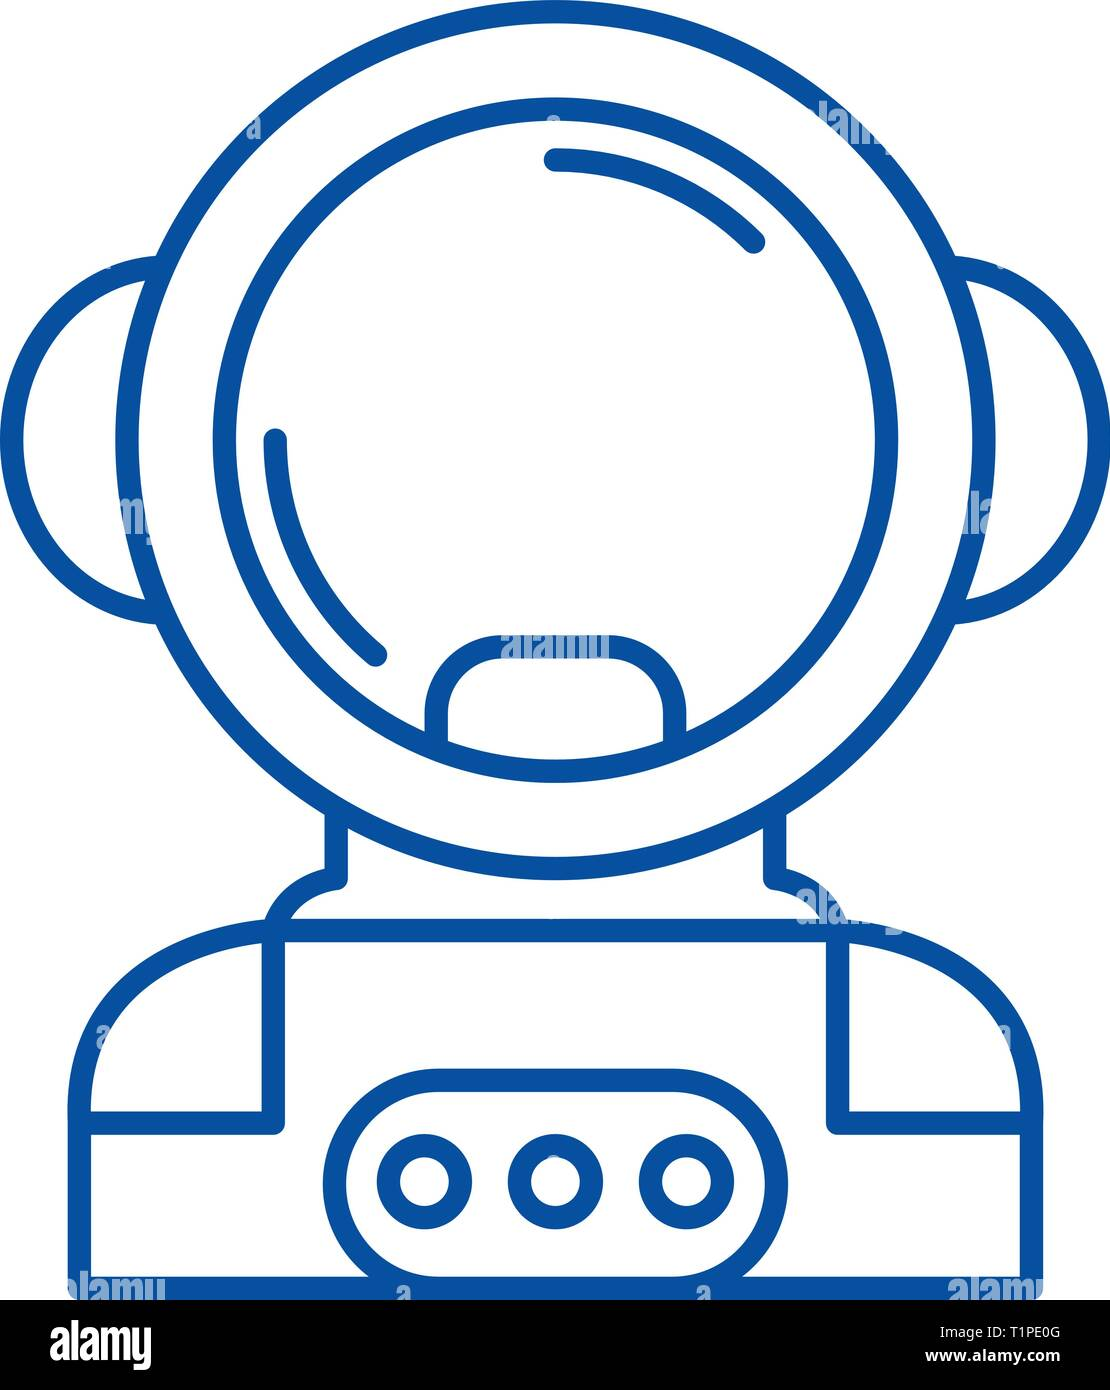 Cosmonaut in space line icon concept. Cosmonaut in space flat  vector symbol, sign, outline illustration. - Stock Image